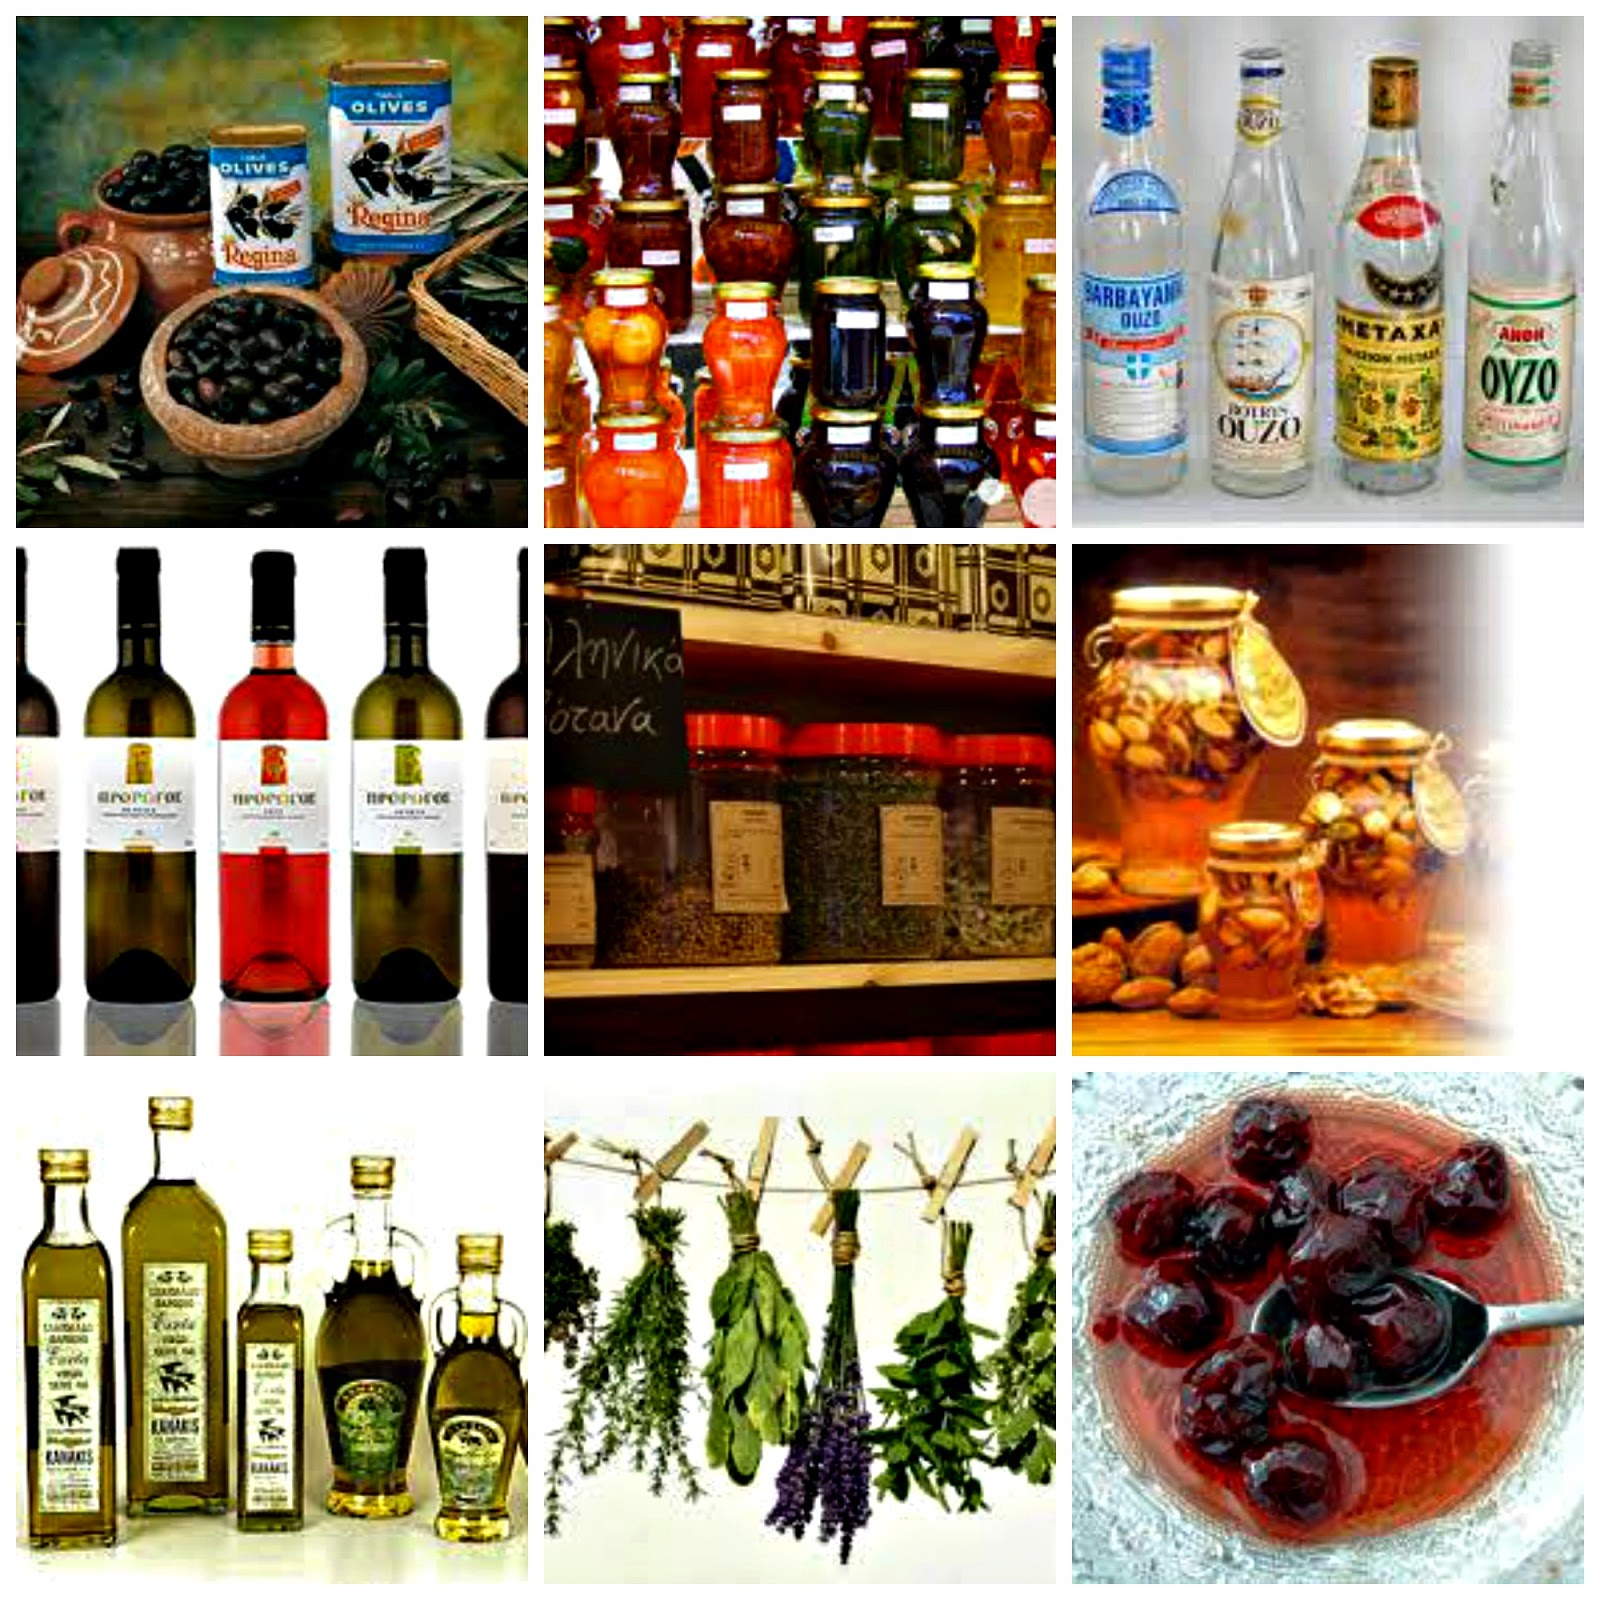 Gifts to take home from Greece. Pictures courtesy of Google.